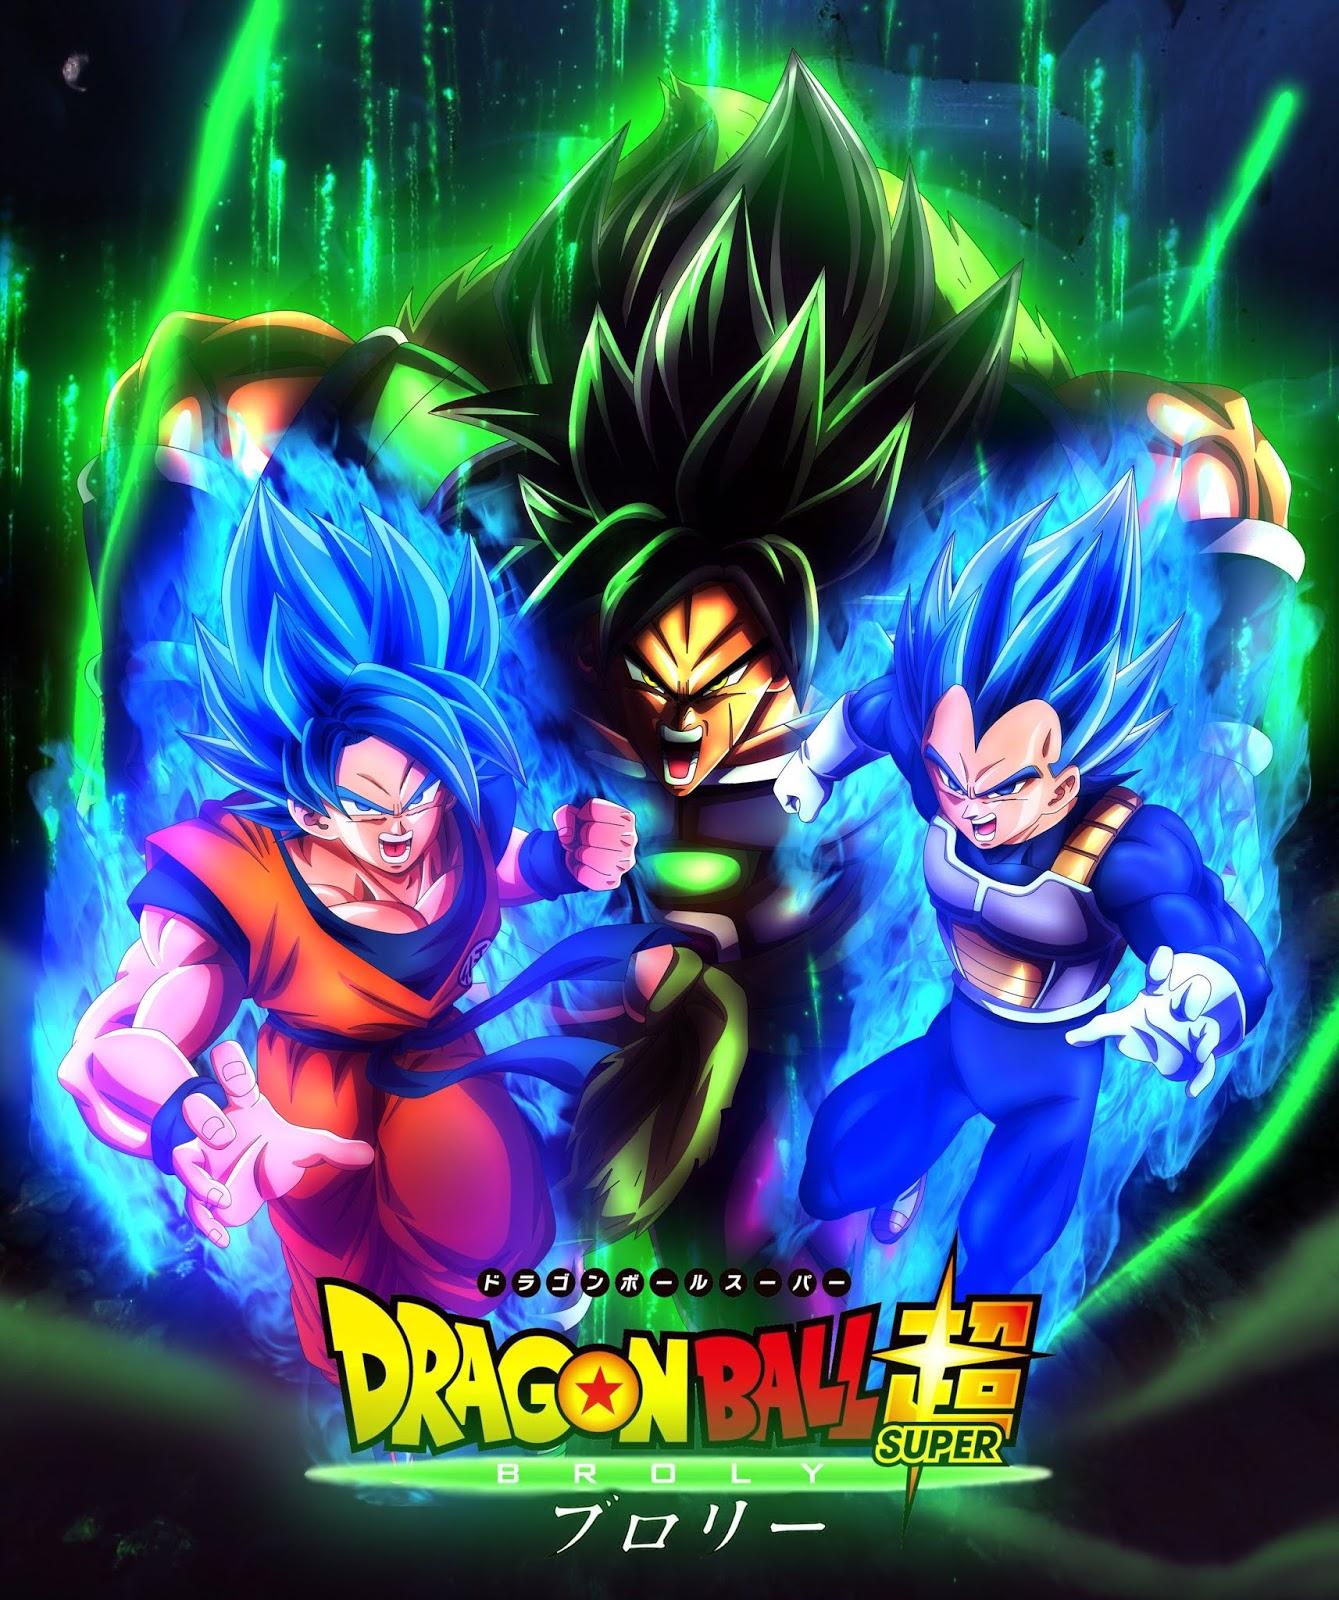 Dragon Ball Movie 19 Super Broly 2018 Dubbed In Hindi Full Movie